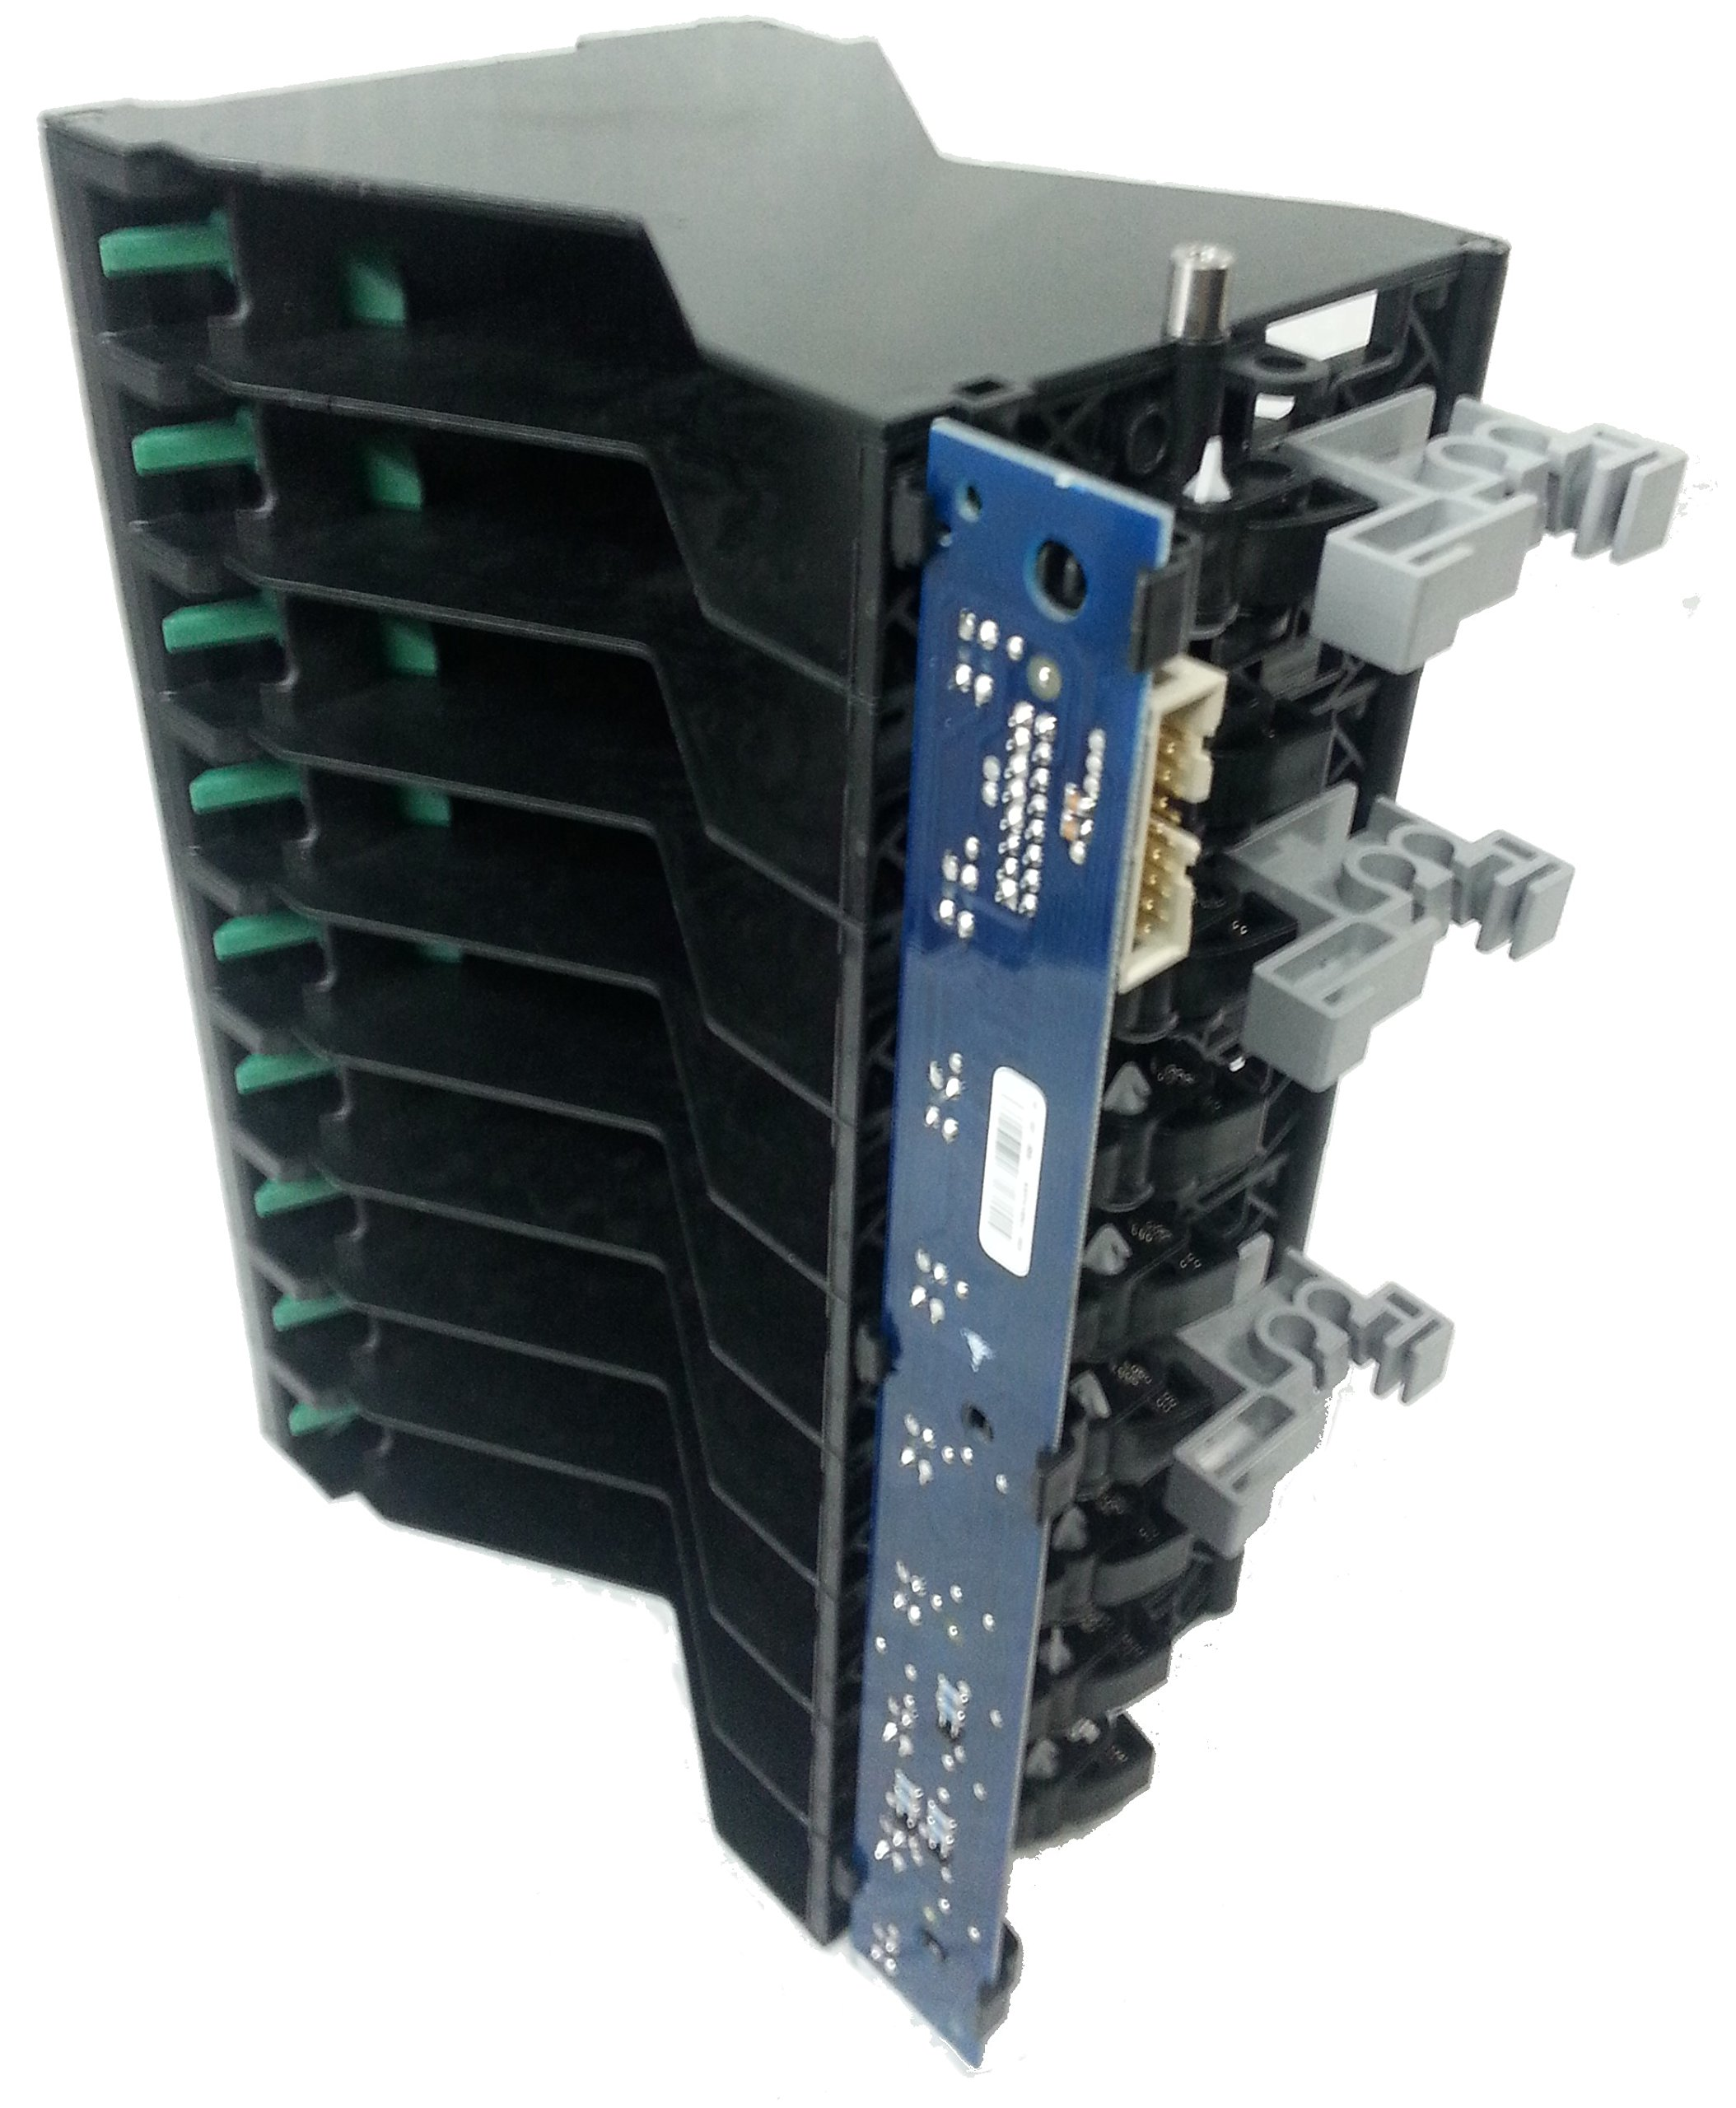 ADIC Scalar 24 - 9 Slot LTO Internal Magazine